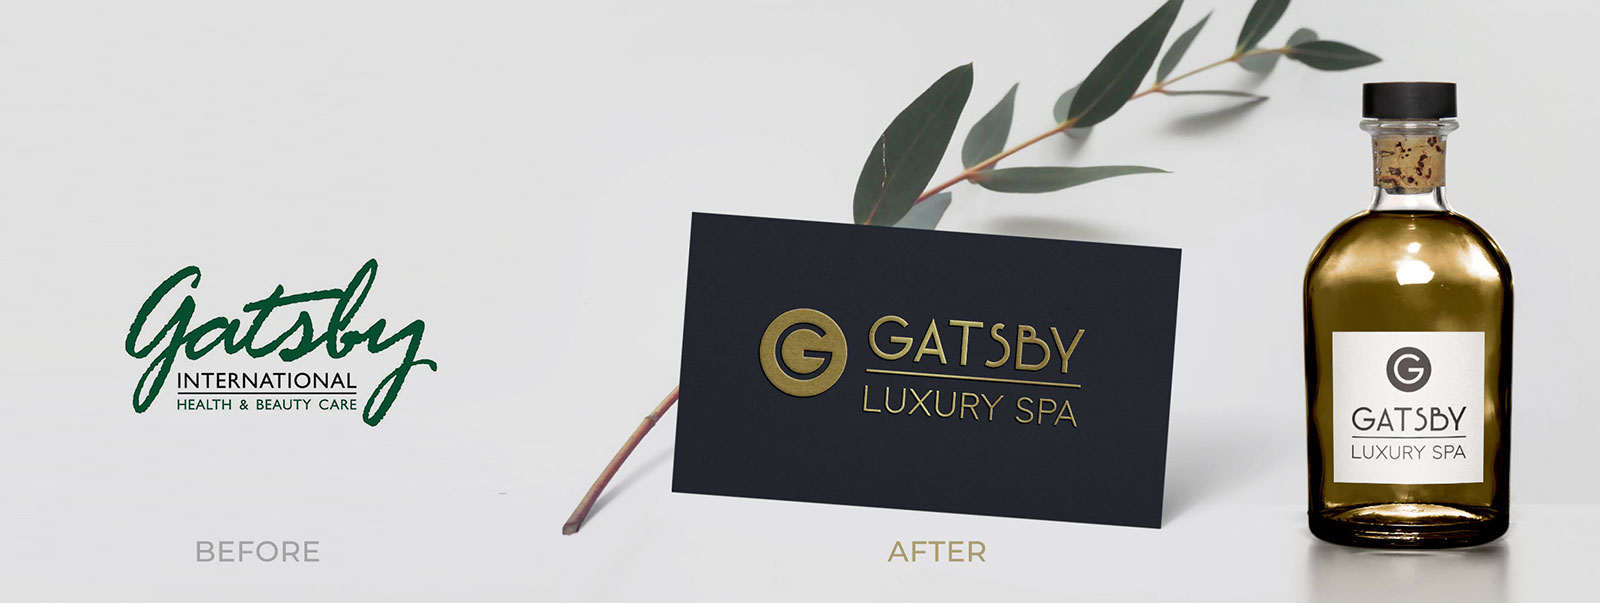 Luxury Spa Marketing and brand design